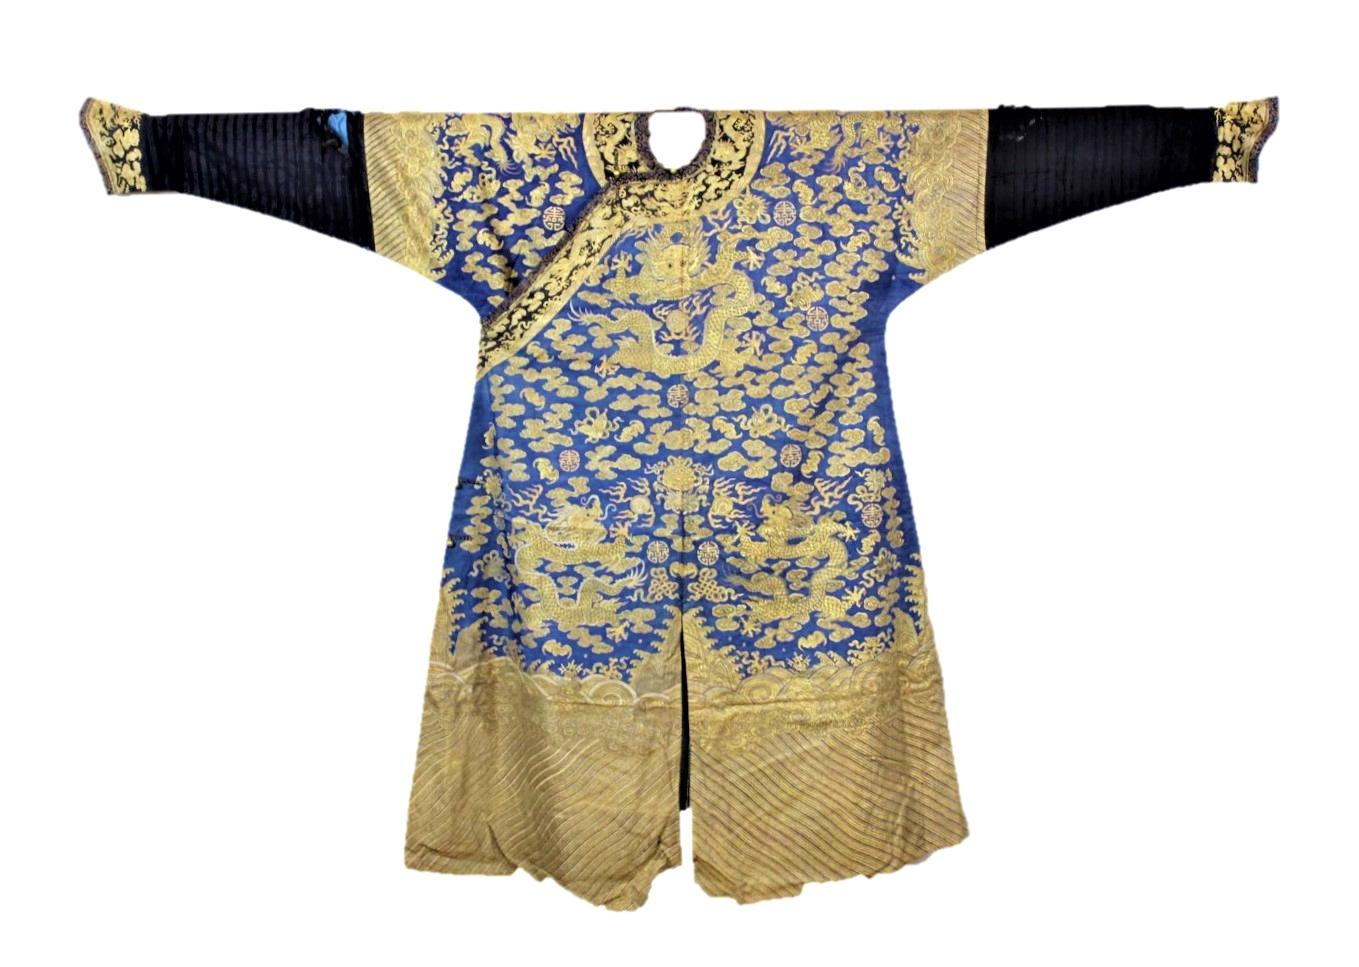 21. A Chinese dragon court robe SOLD for £4,400